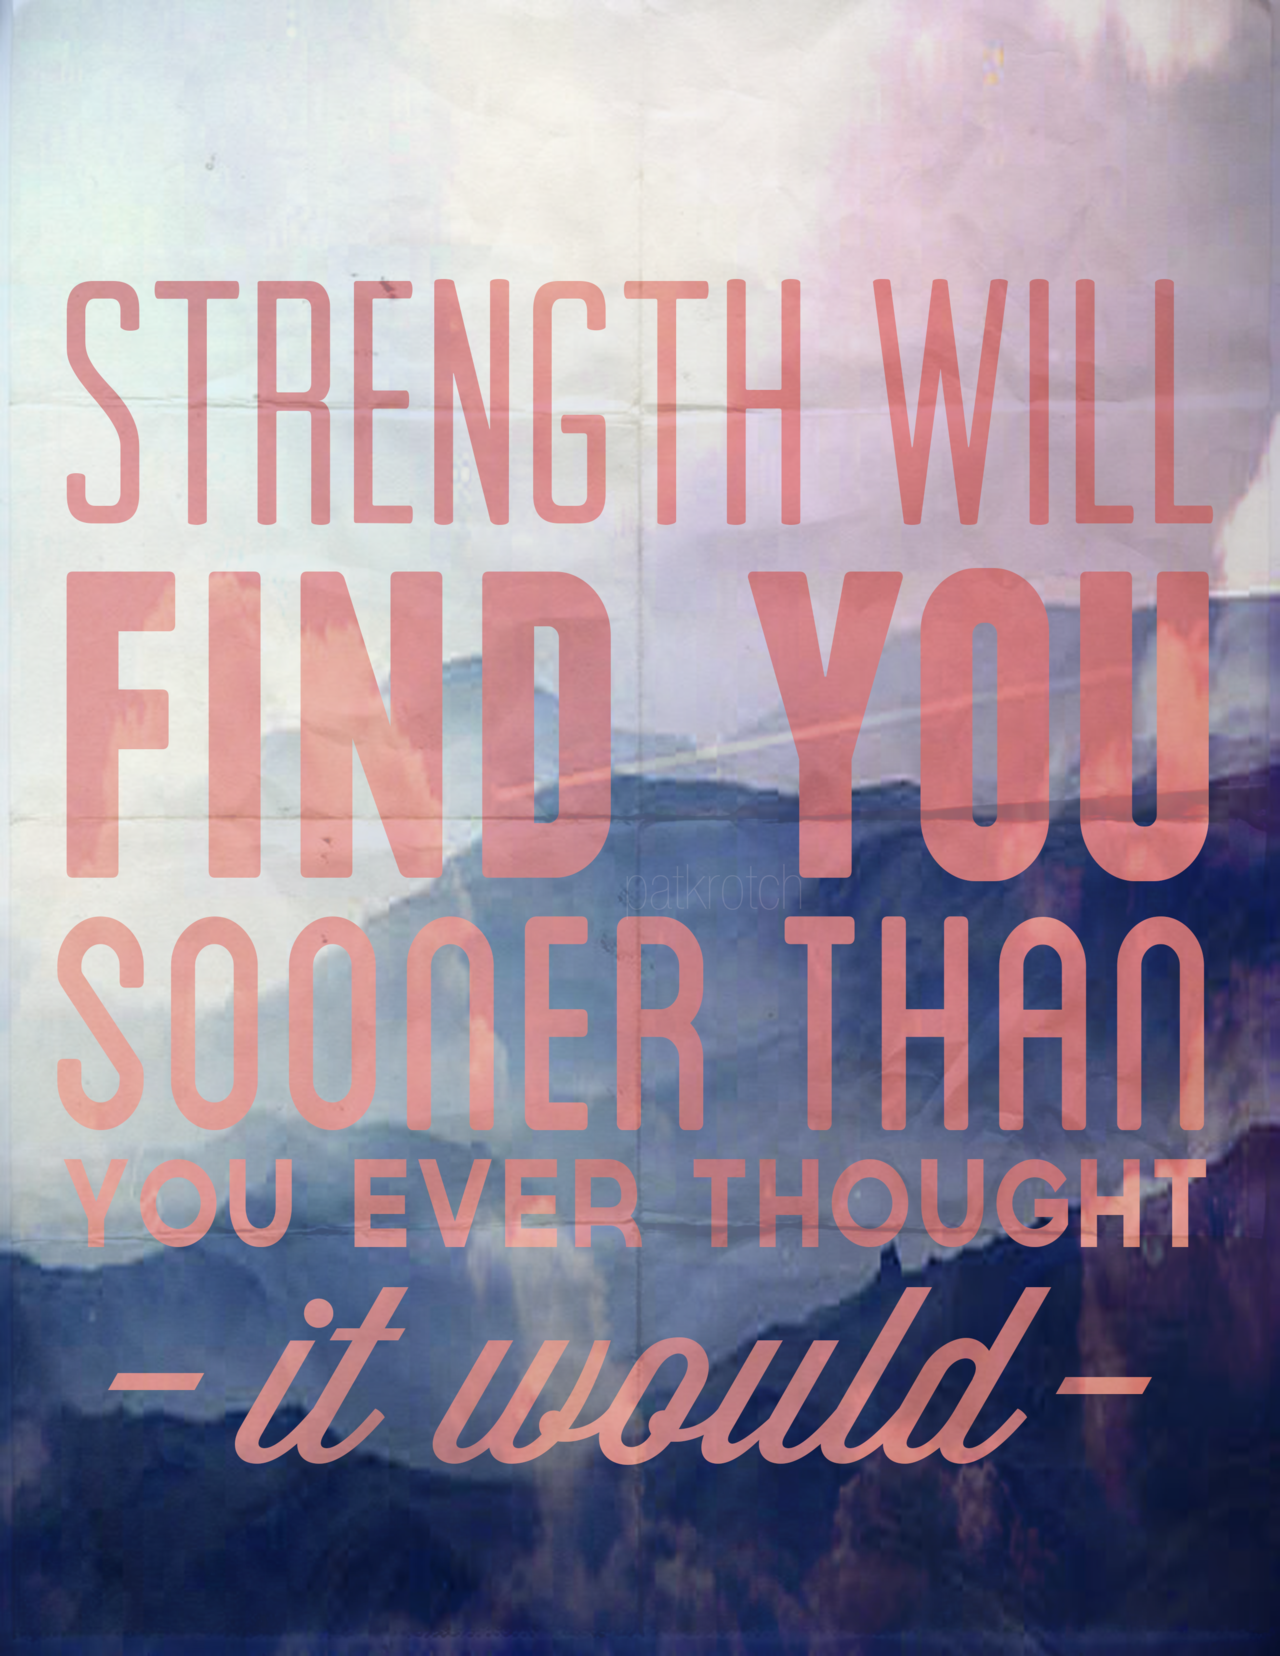 Strength will find you... http://onbecomingalemonademaker.wordpress.com/2013/12/13/making-a-change-how-do-i-take-that-first-step/